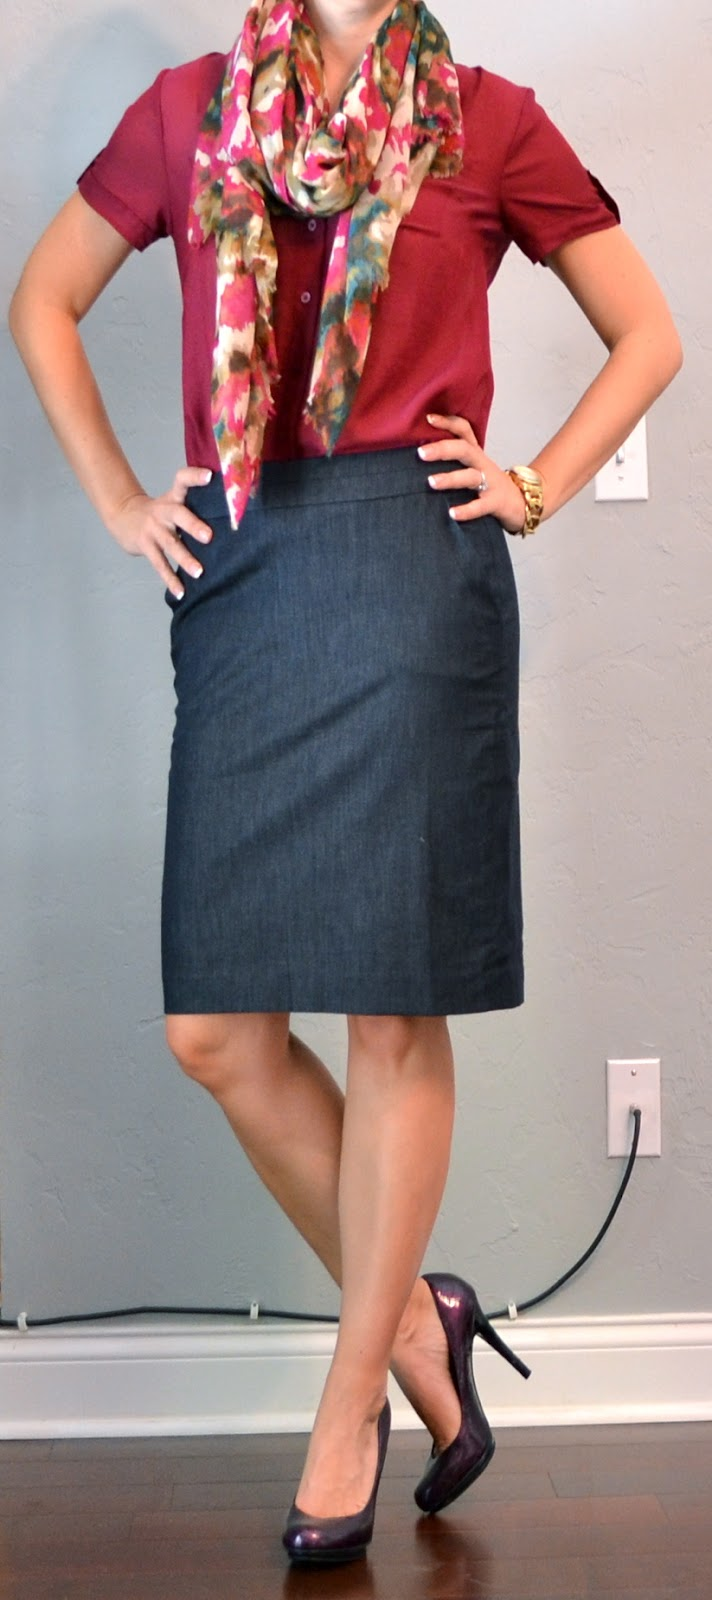 a2fb1aa517d9 outfit post: denim pencil skirt, maroon camp shirt, floral scarf